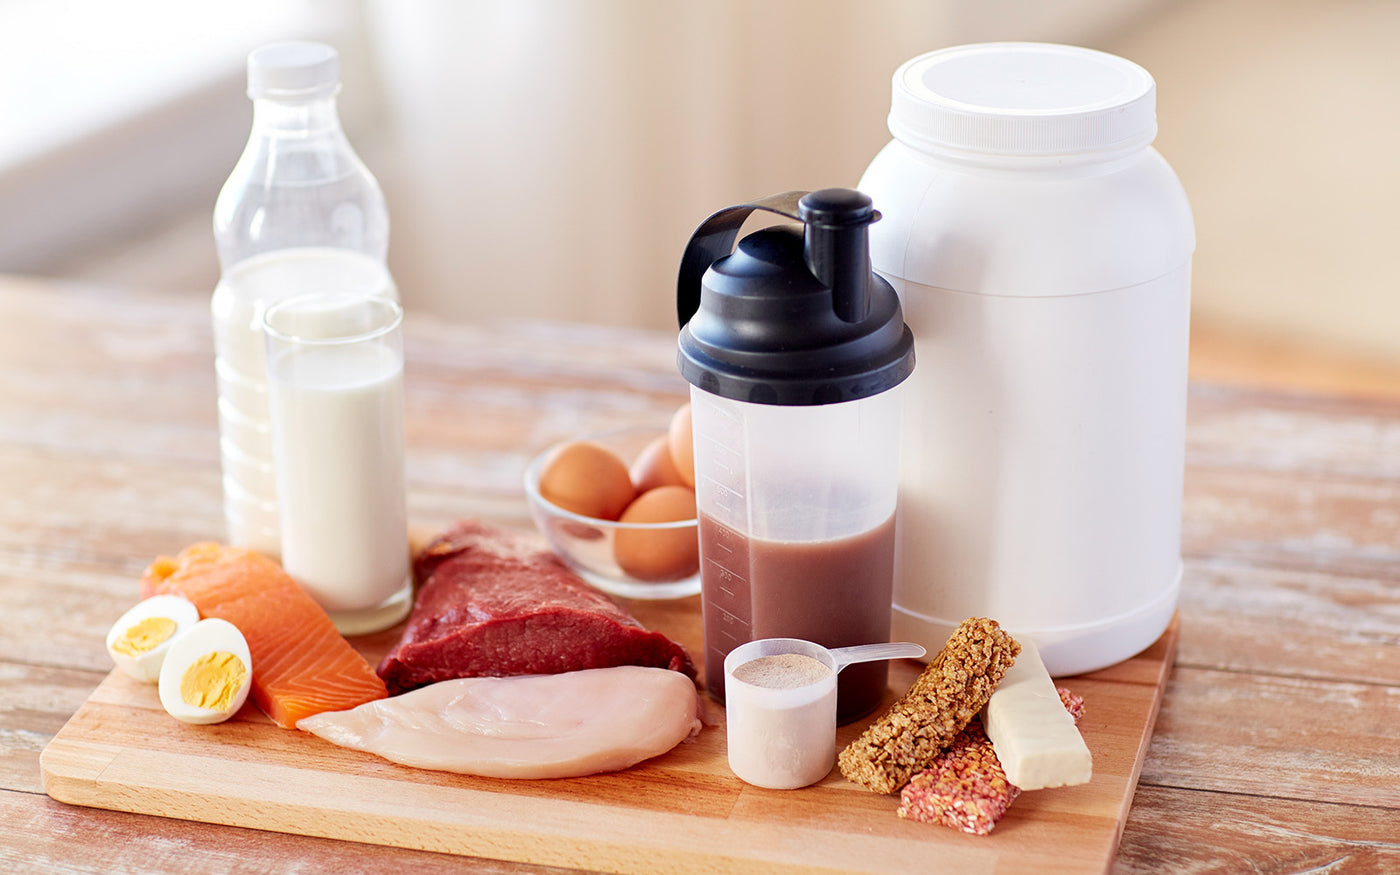 Cutting diet: Protein shake next to lean meats, milk and eggs